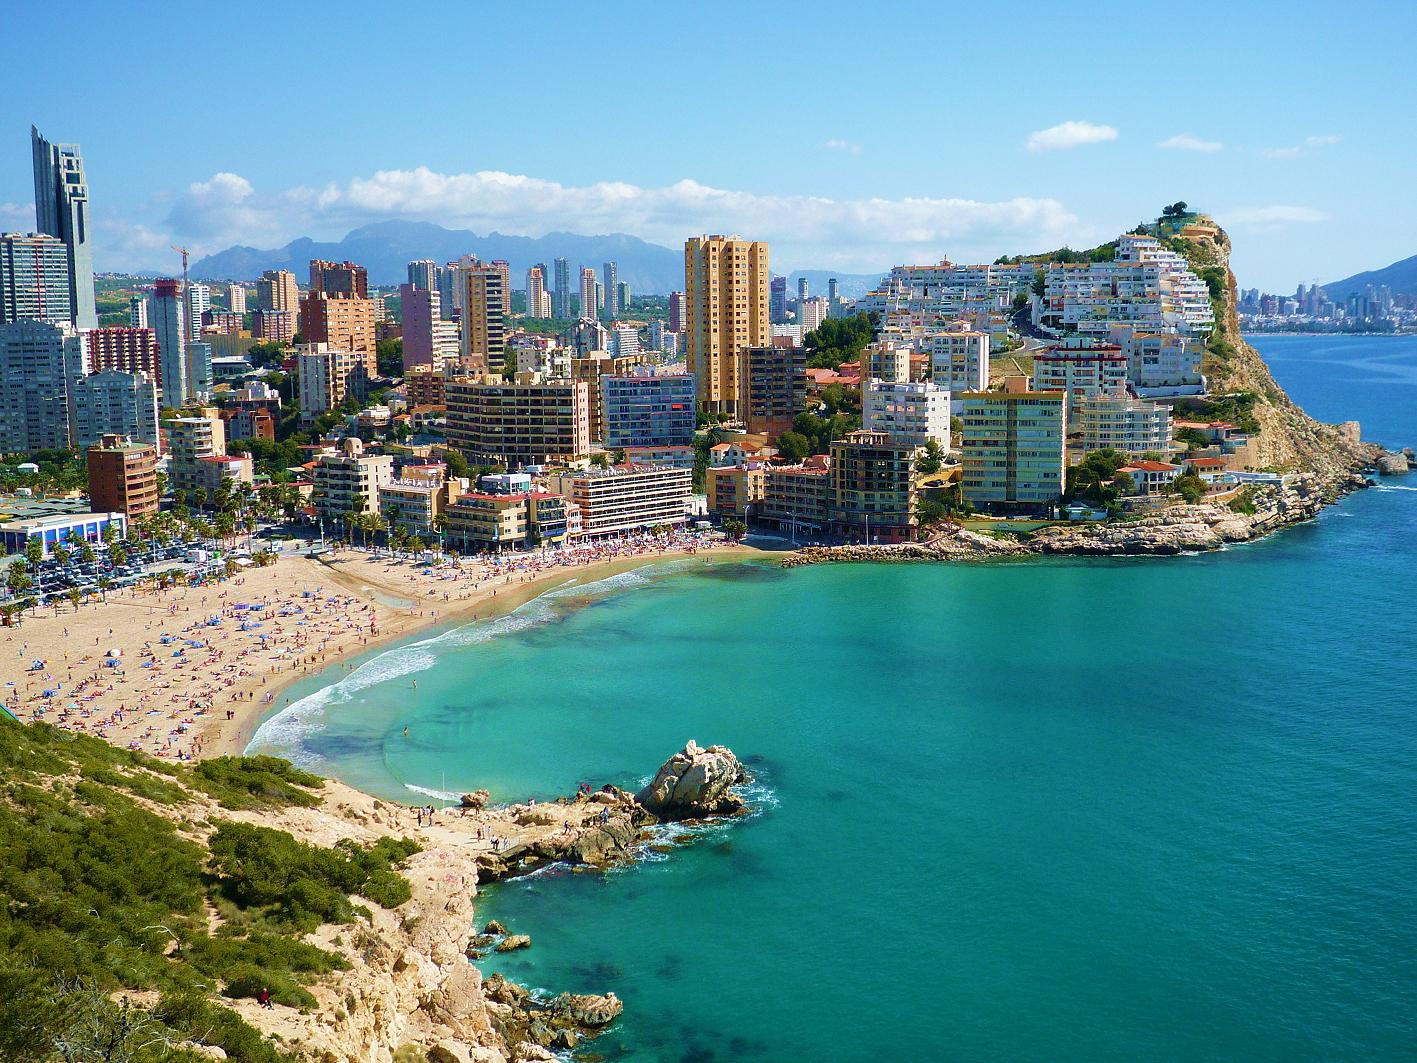 Mighty Spain reigns supreme as the most popular holiday destination with 29.05% of bookings according to the latest research 2